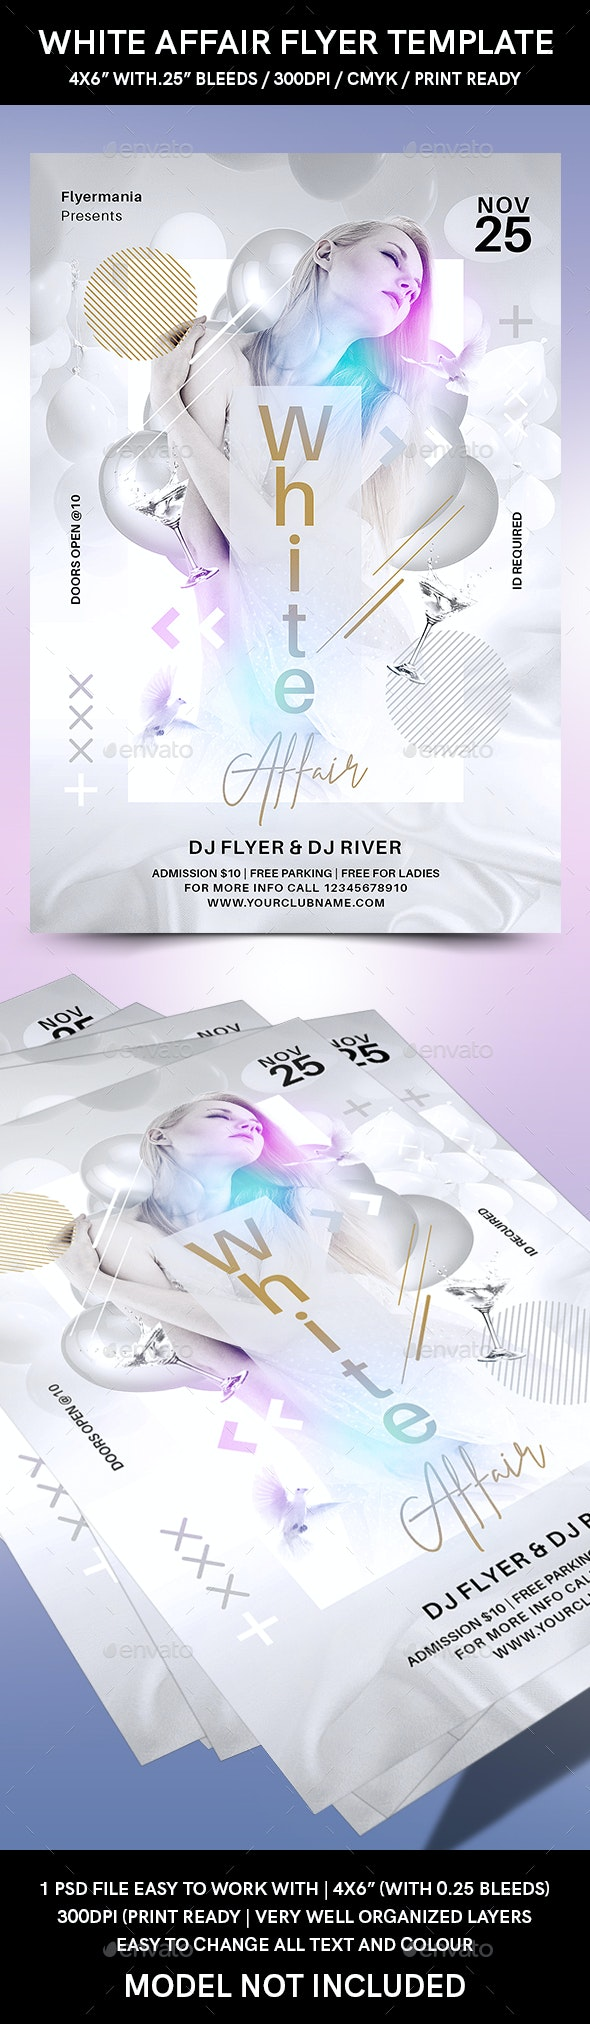 White Affair Flyer Template - Events Flyers